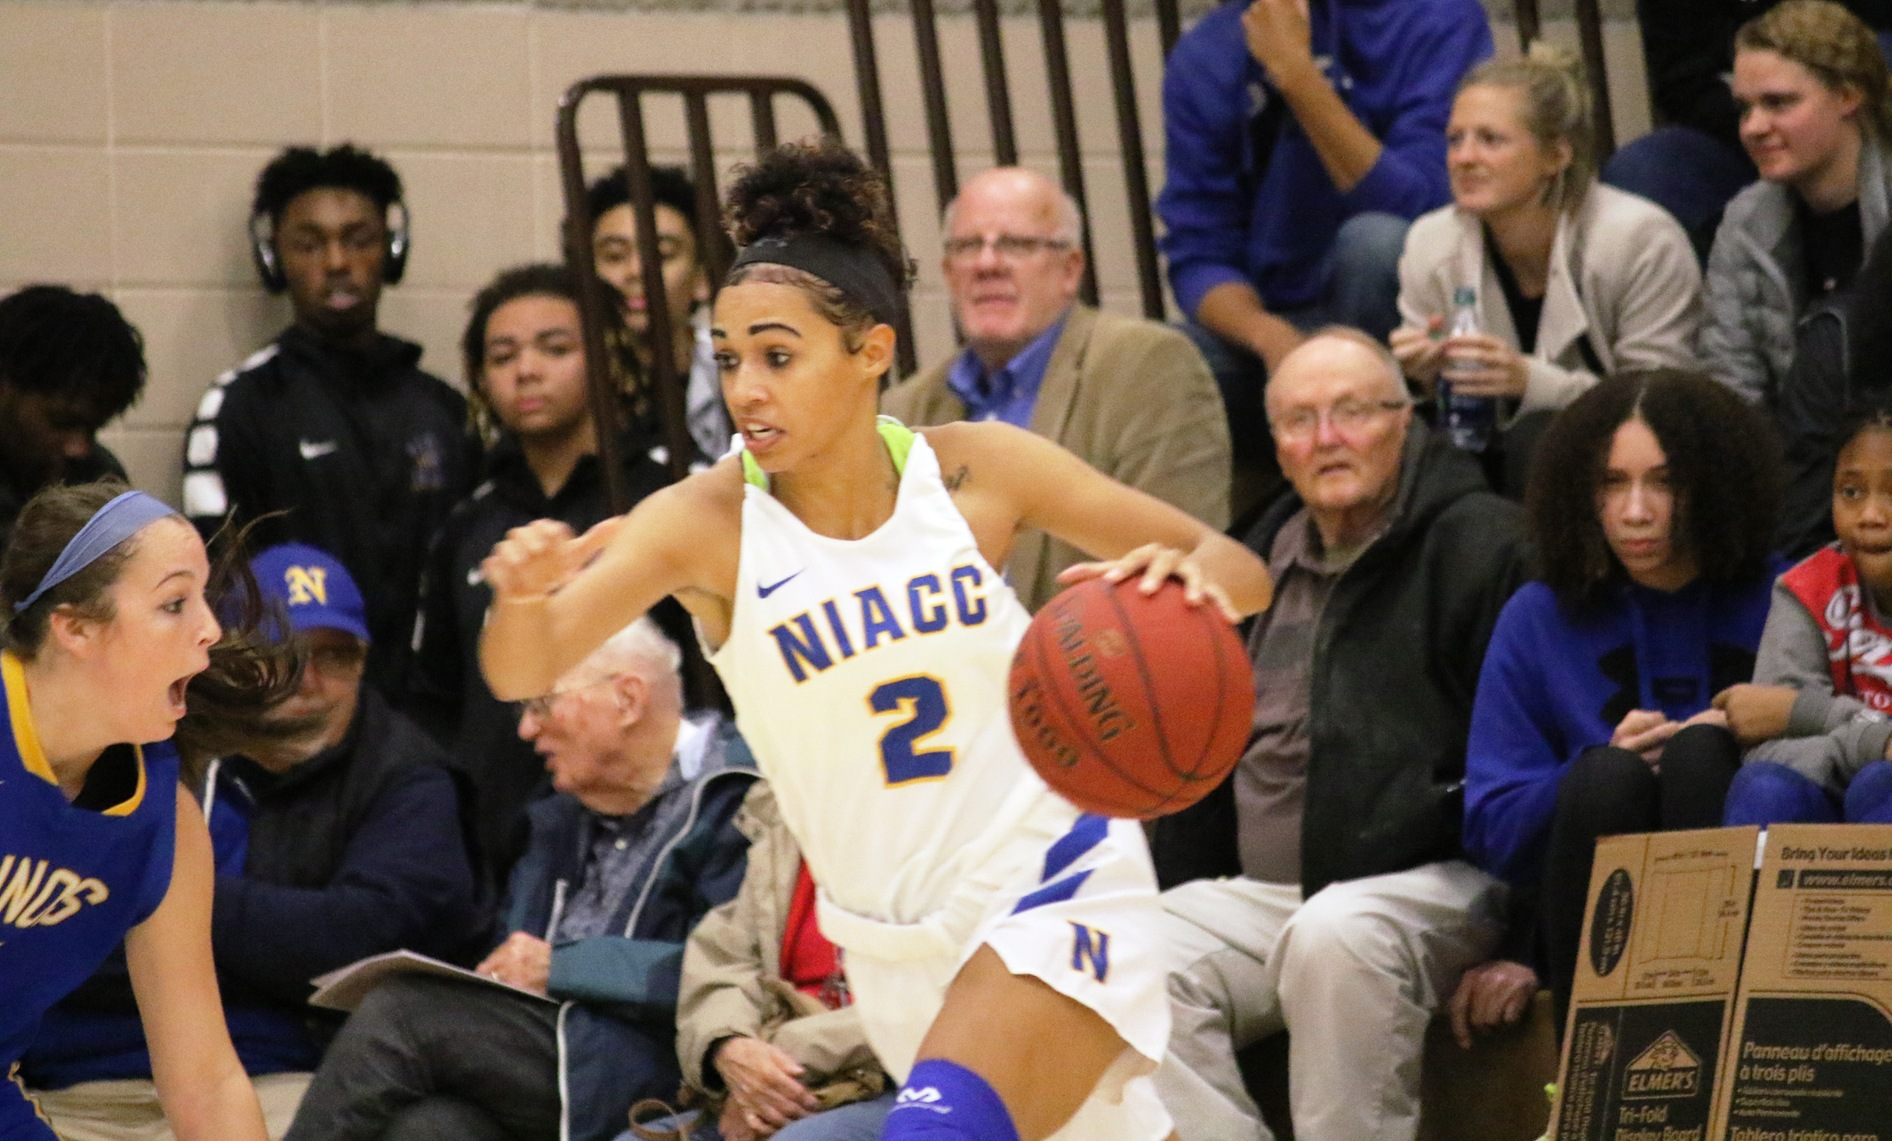 NIACC's Mikayla Homola drives to the basket in last Friday's win over Illinois Central.